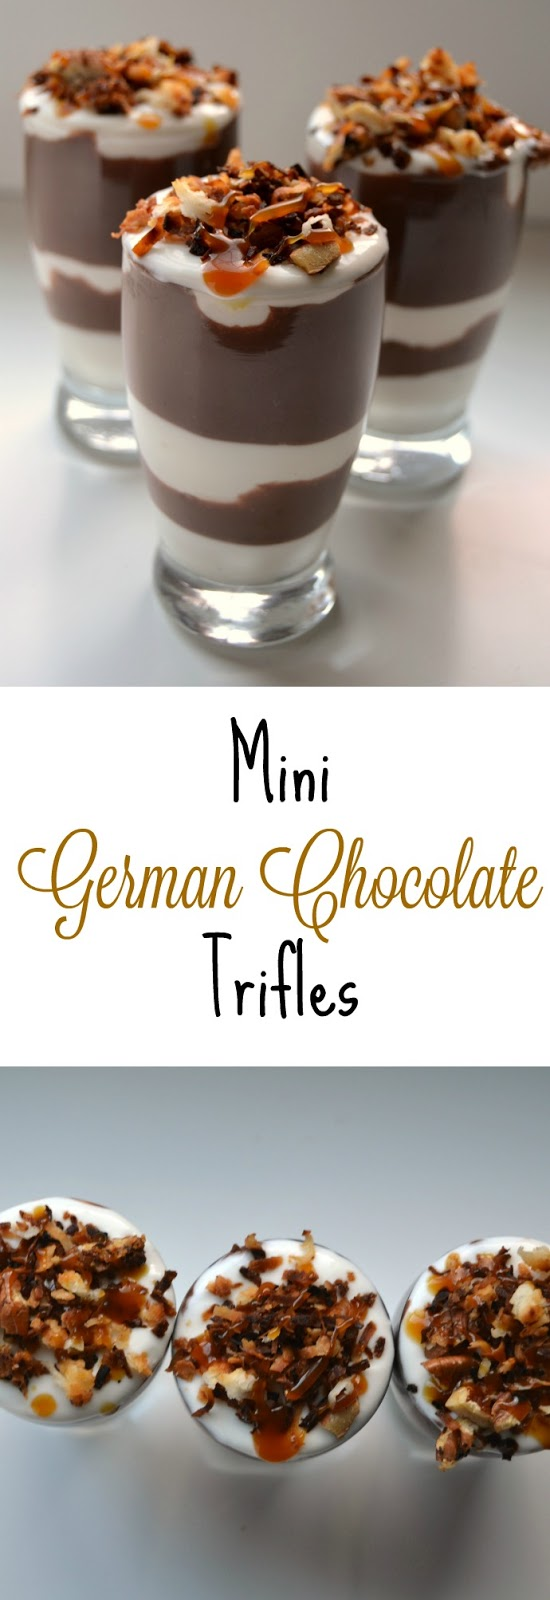 Mini German Chocolate Trifles- a simple dessert that is lightened up with chocolate, caramel, coconut and pecans!